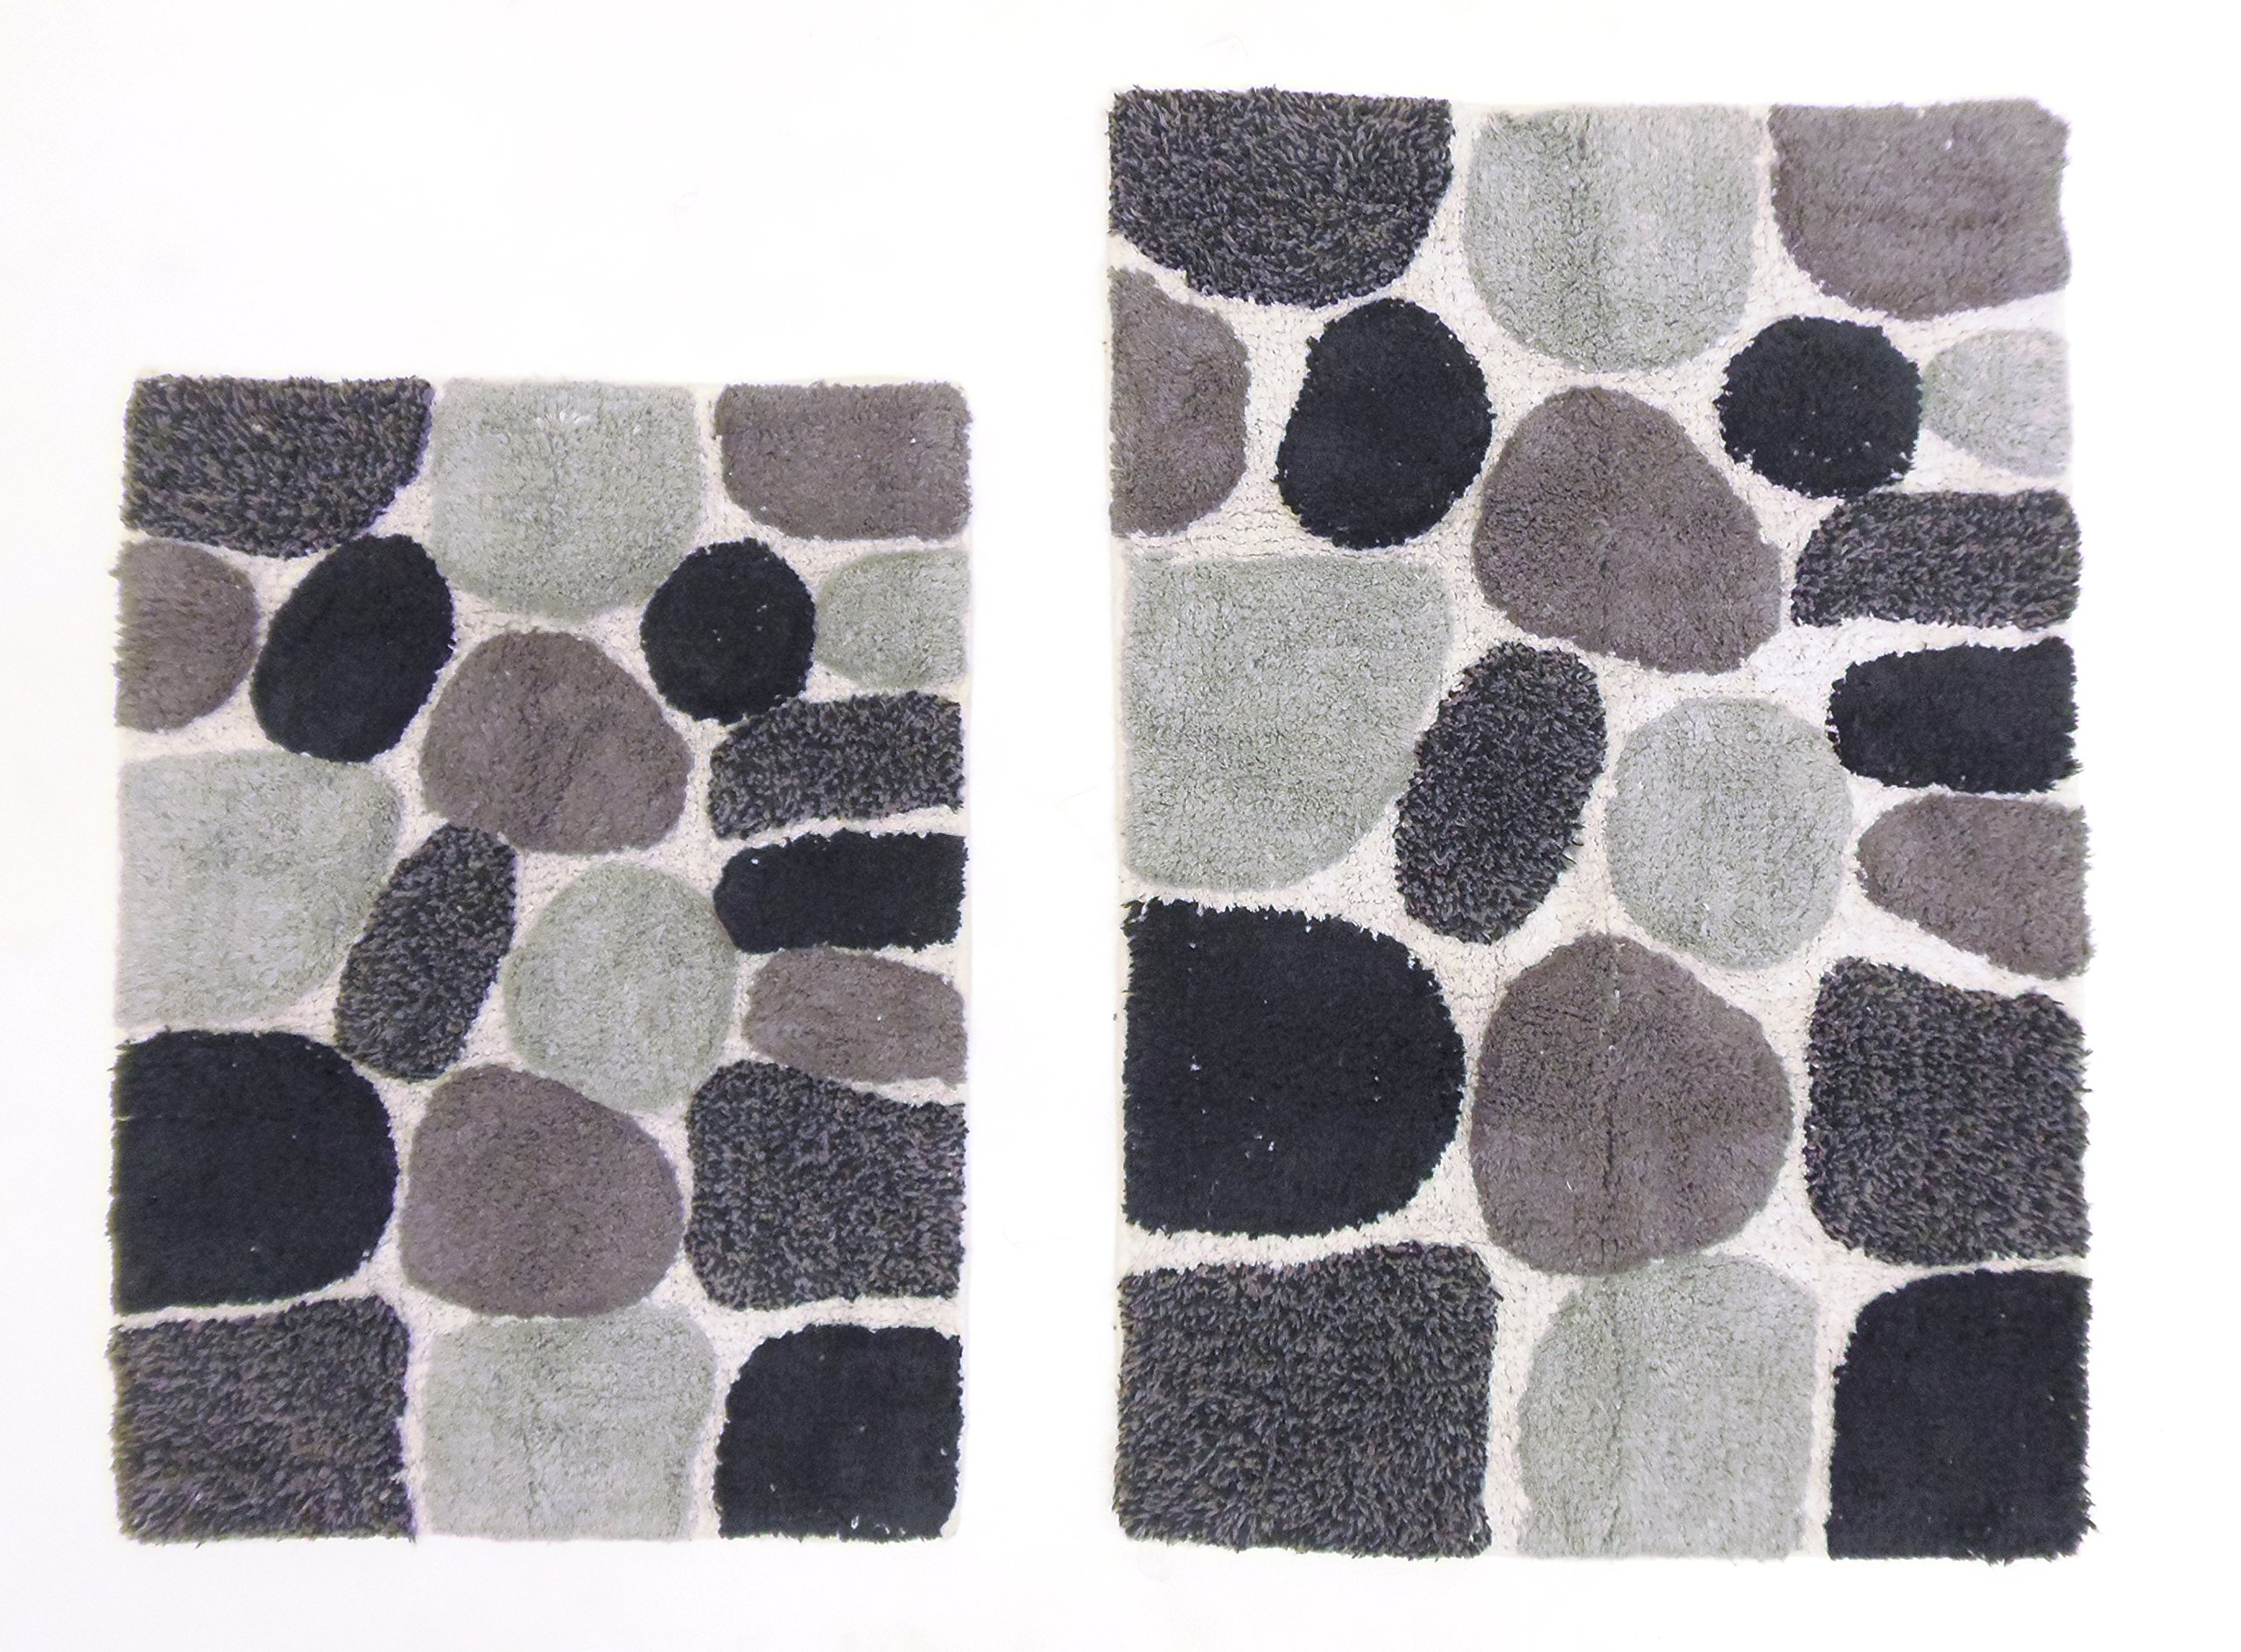 Cotton Craft - 2 Piece Bath Rug Set - Pebbles Stones with Spray Latex Back - Grey Multi - 100% Pure Cotton and absorbent - Super Soft and Plush - Hand Tufted Heavy Weight Durable Construction - Larger Rug is 21x32 Oblong and Second Rug is Oblong 18x24 - E